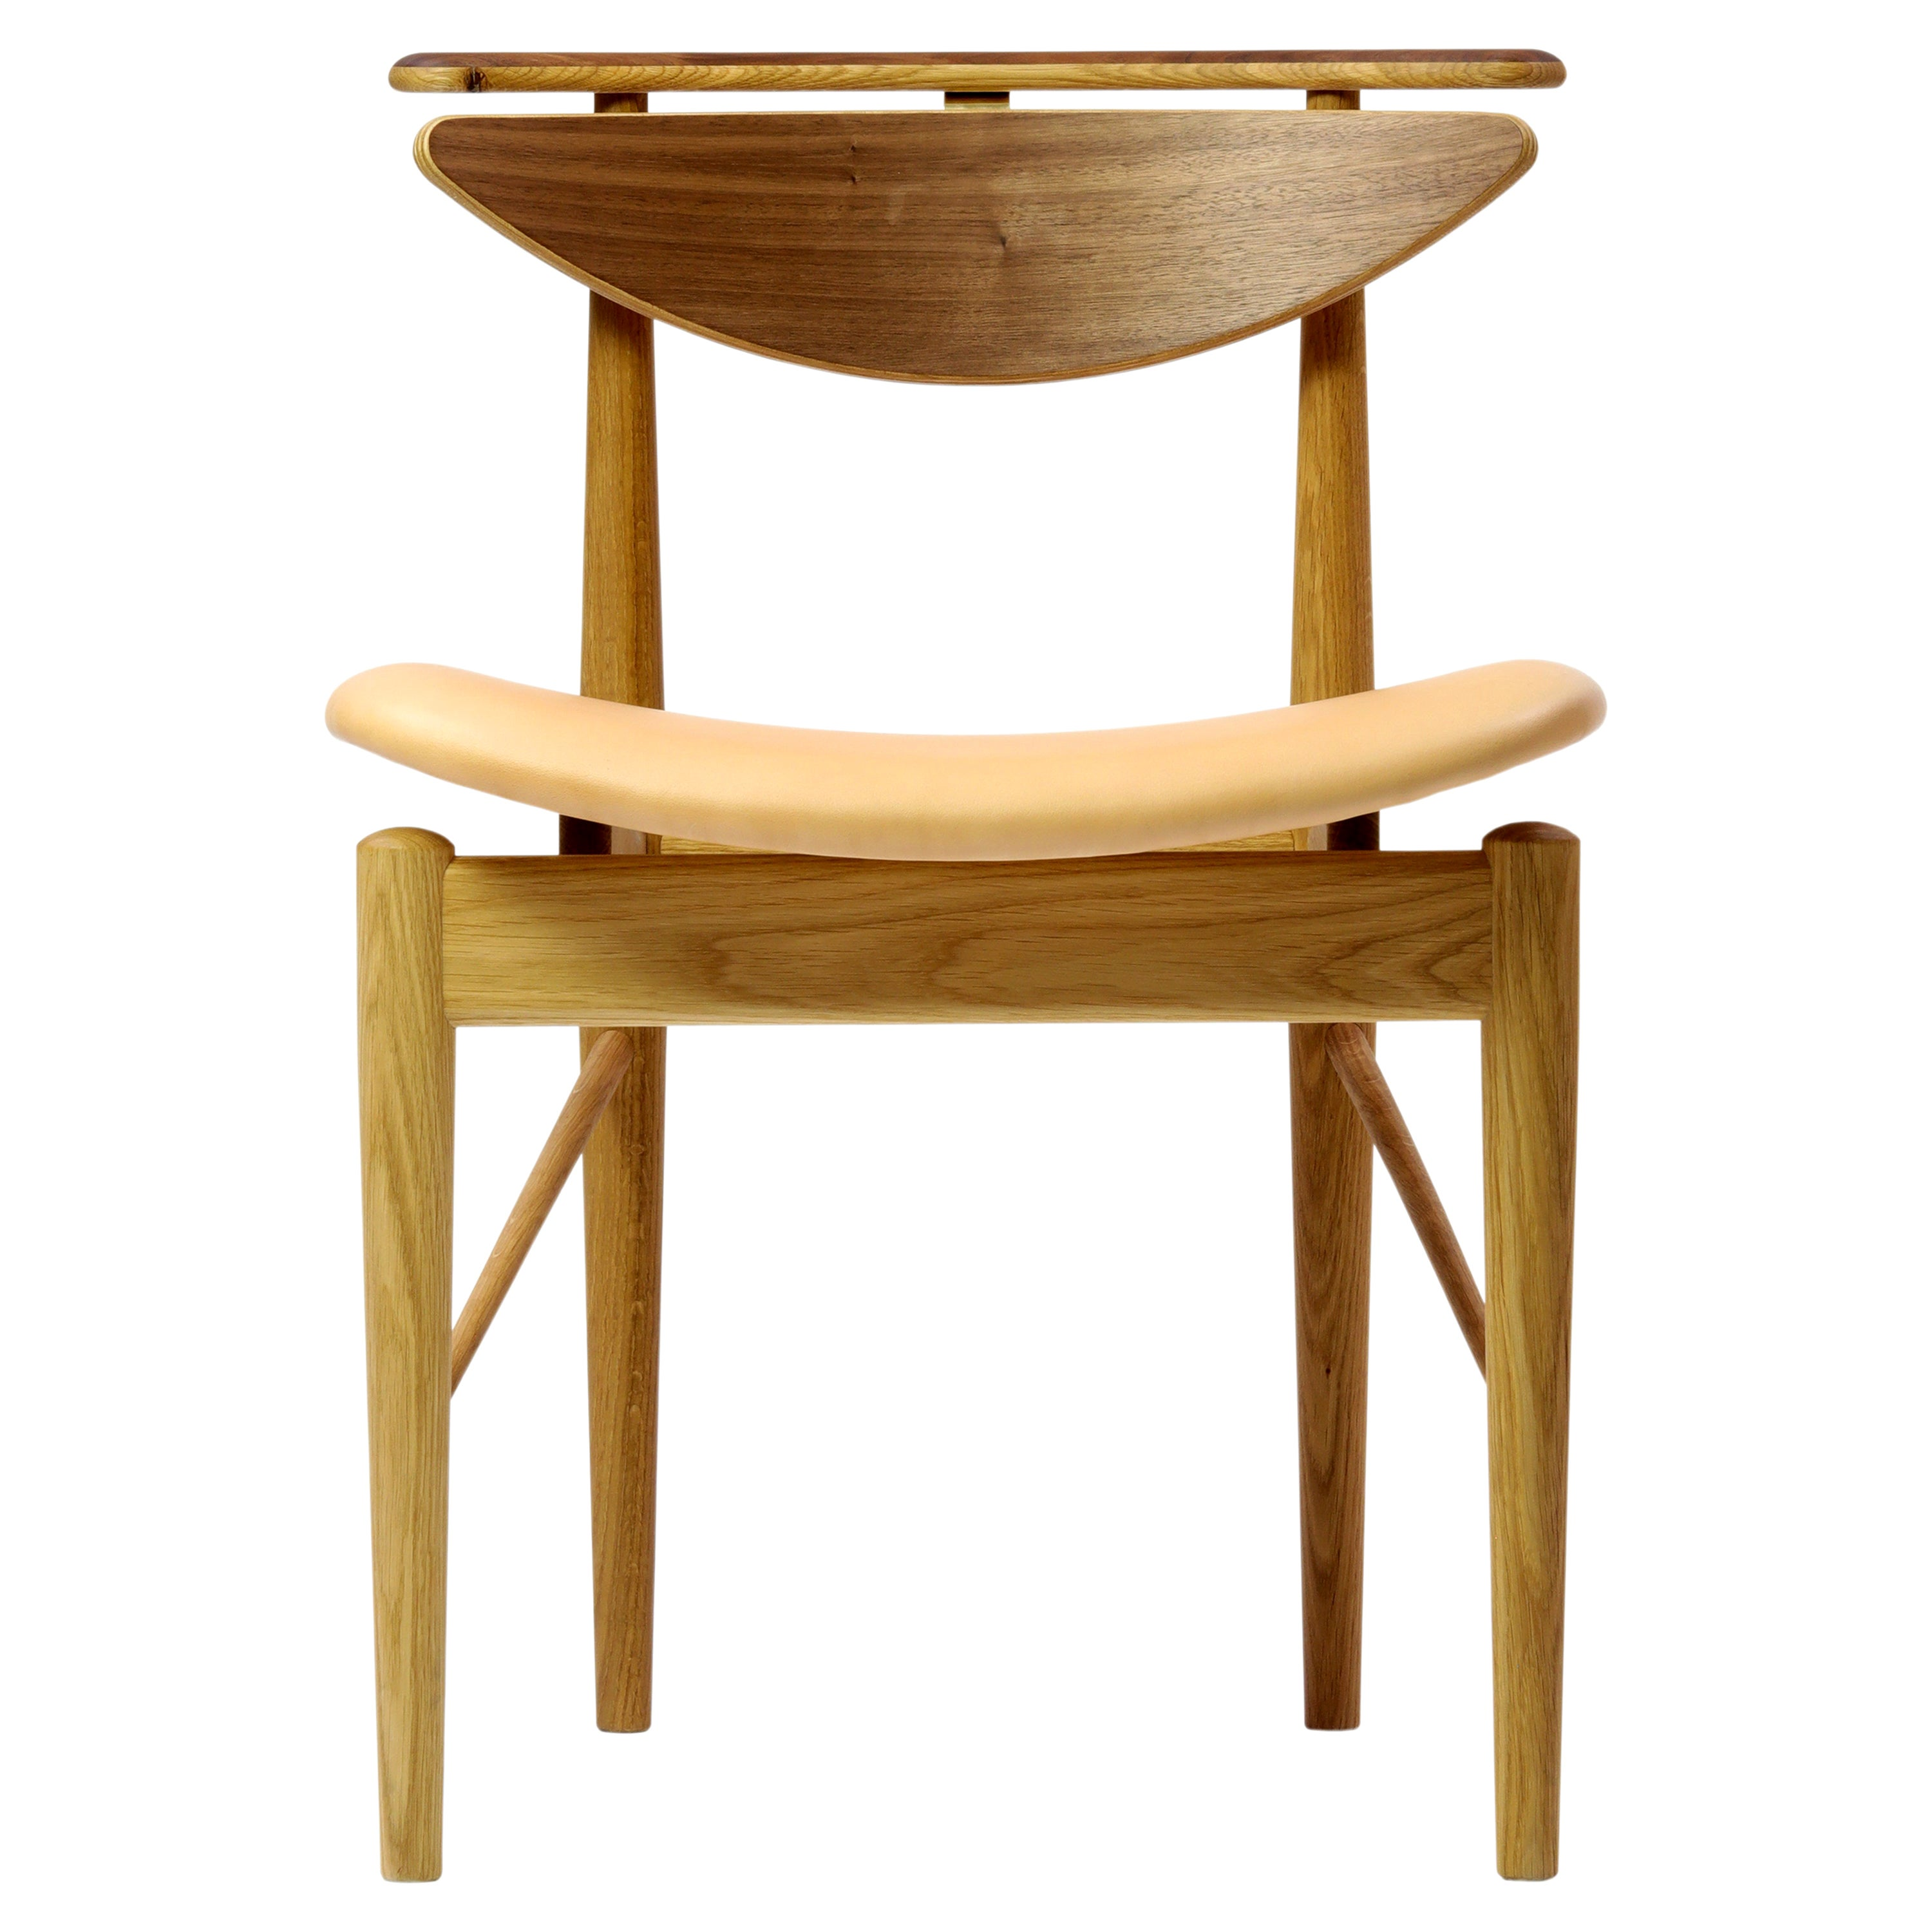 Finn Juhl Reading Chair, Wood and Leather